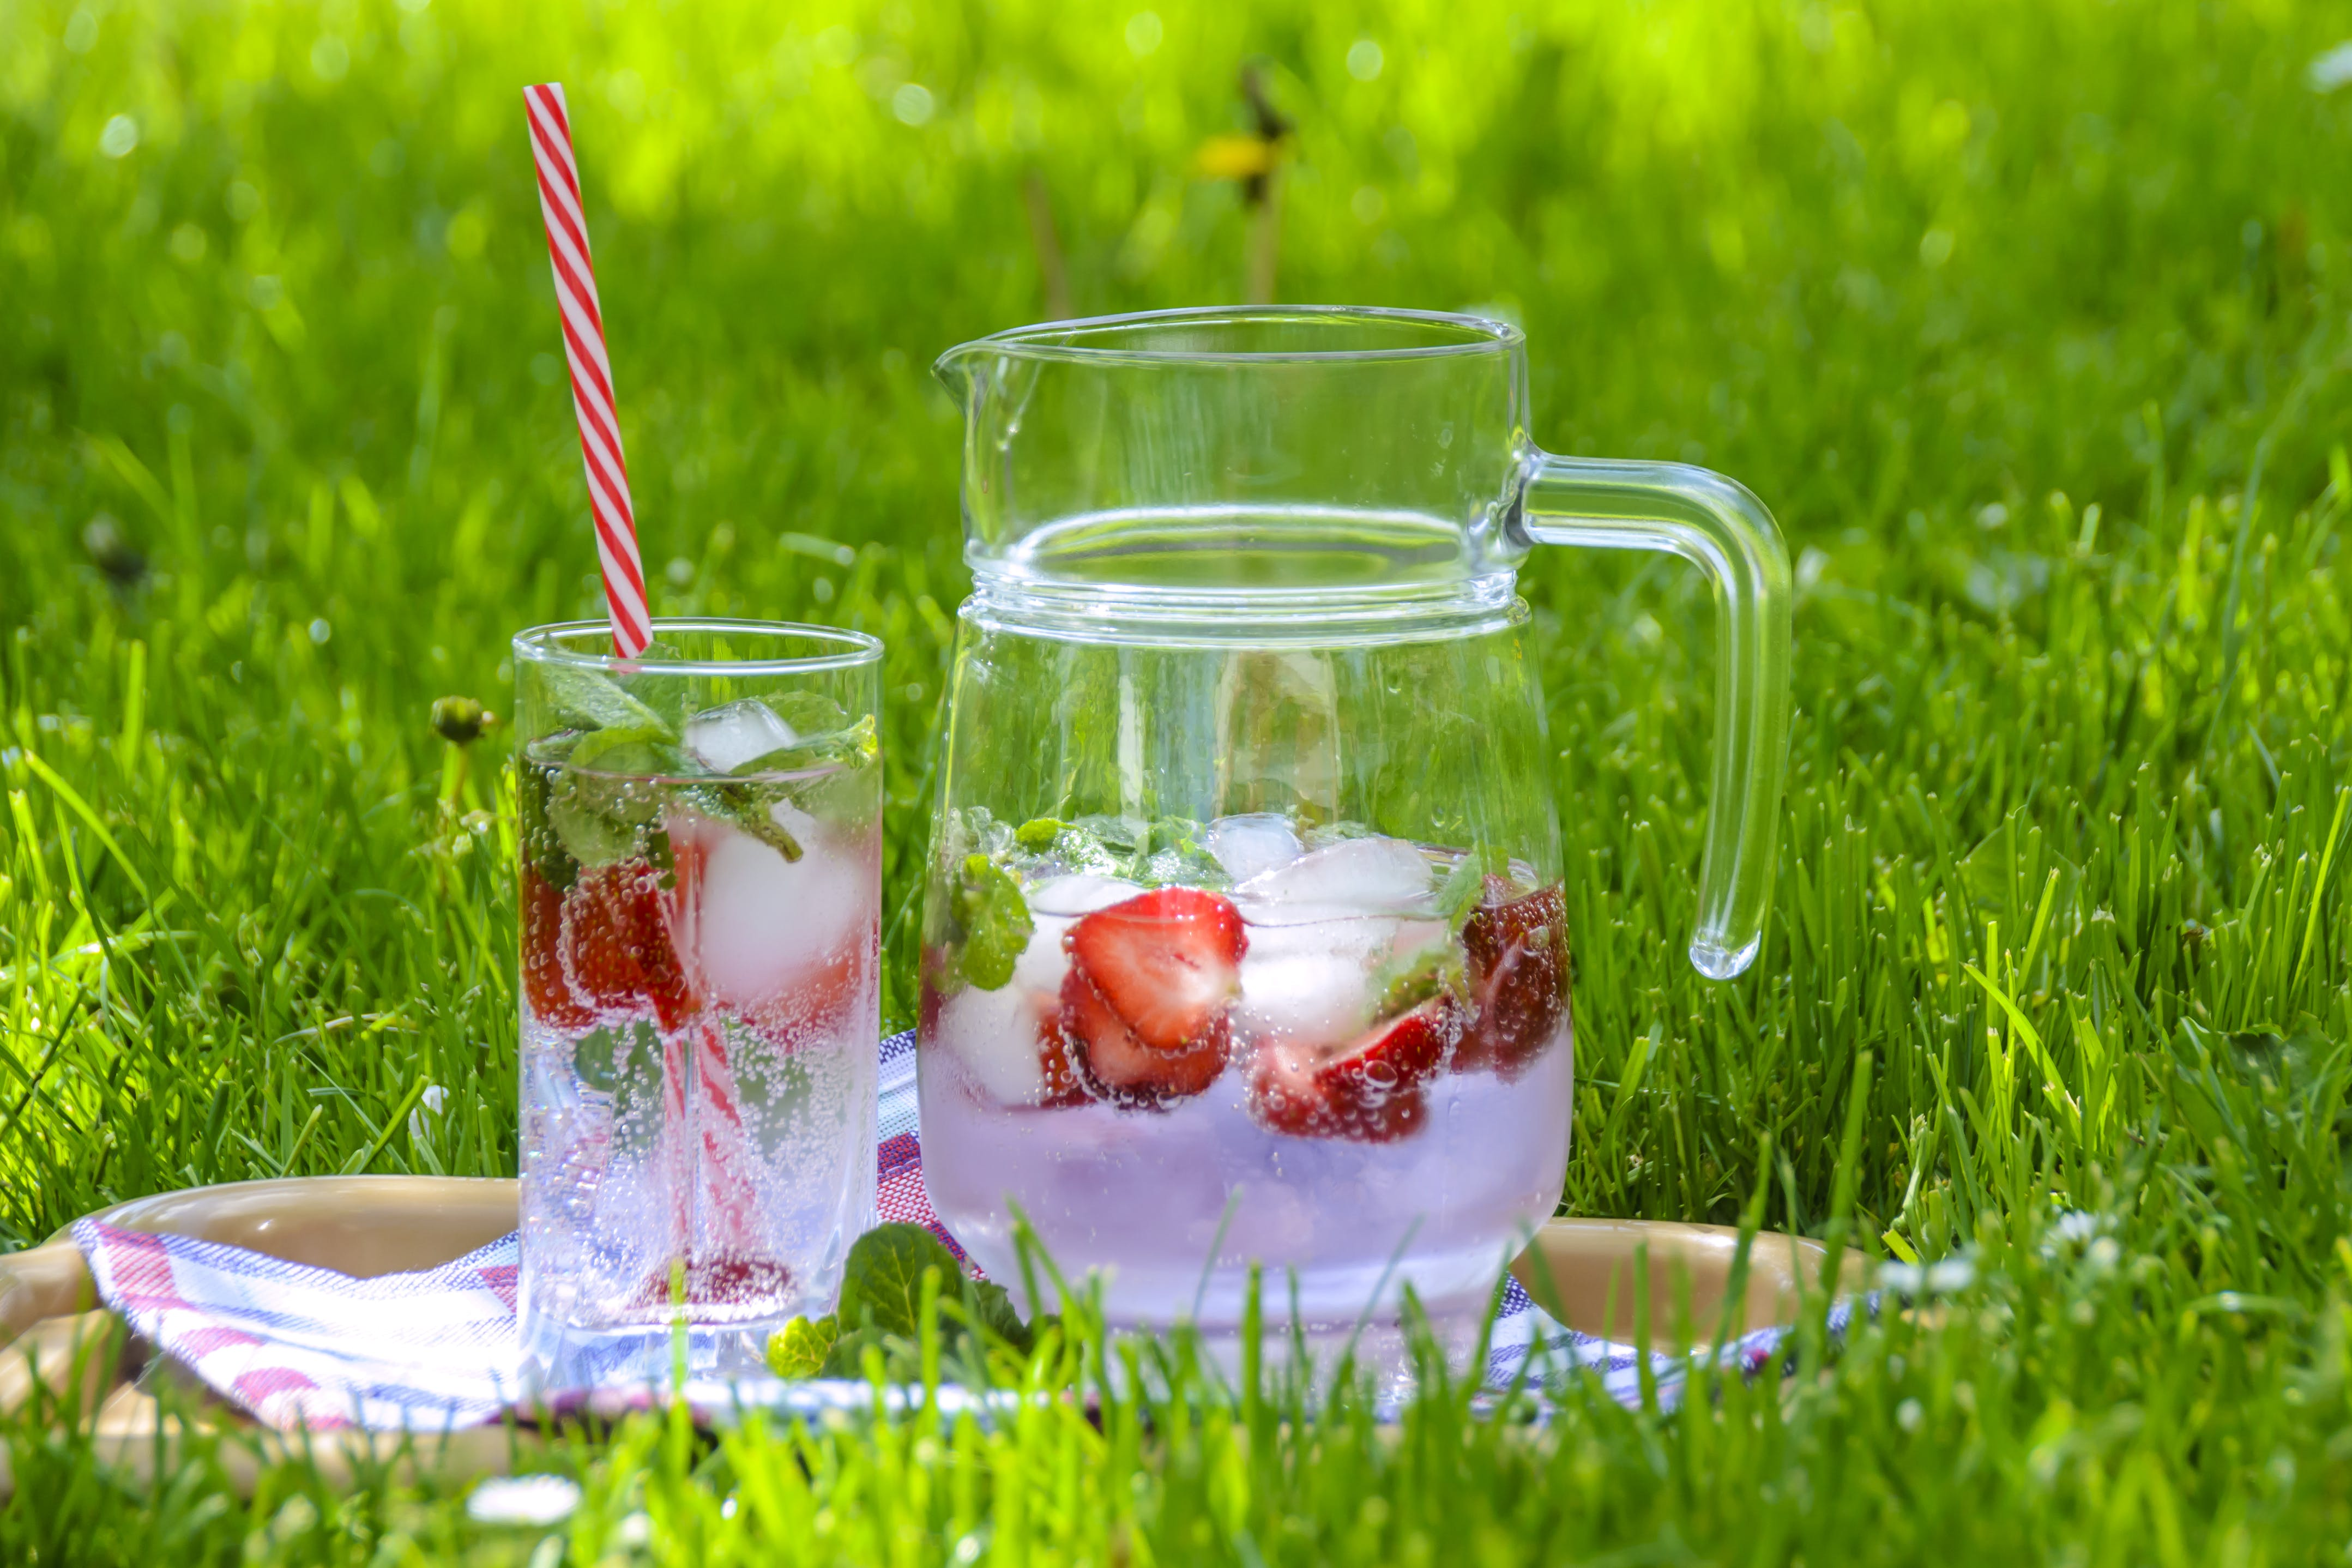 Clear Glass Pitcher With Drinking Cup on Green Grass